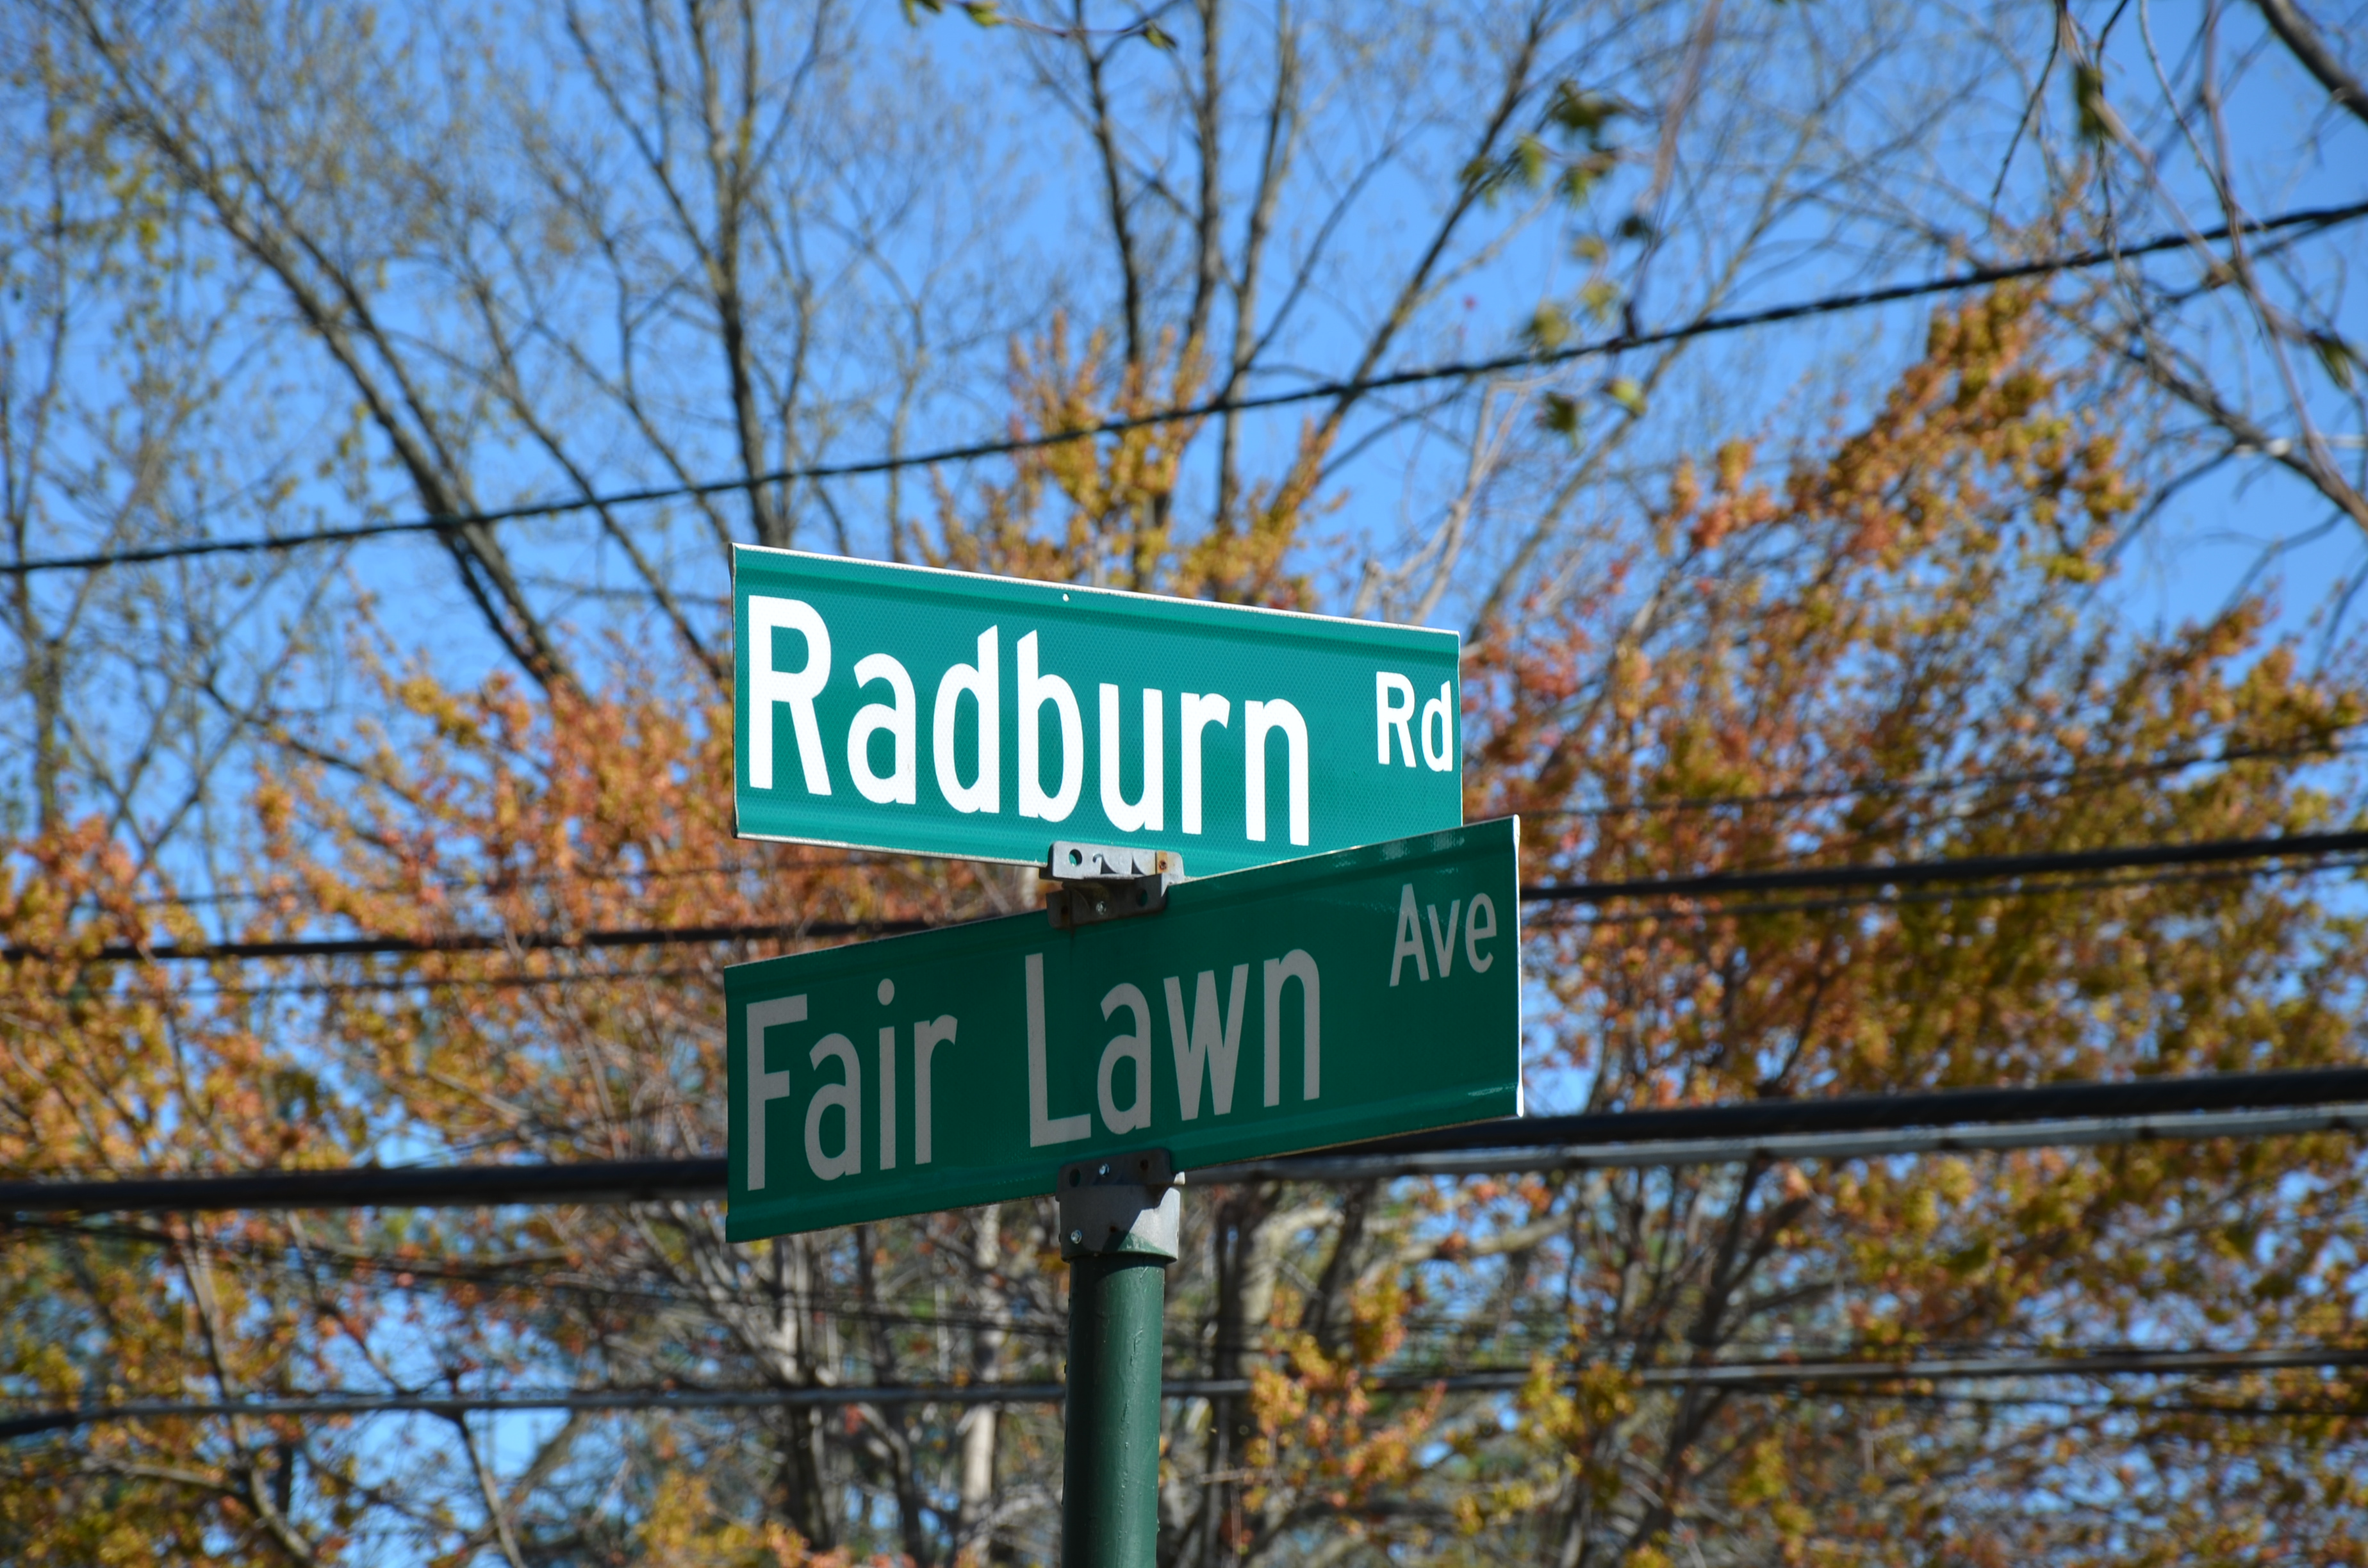 Radburn Planned Community of Fair Lawn NJ